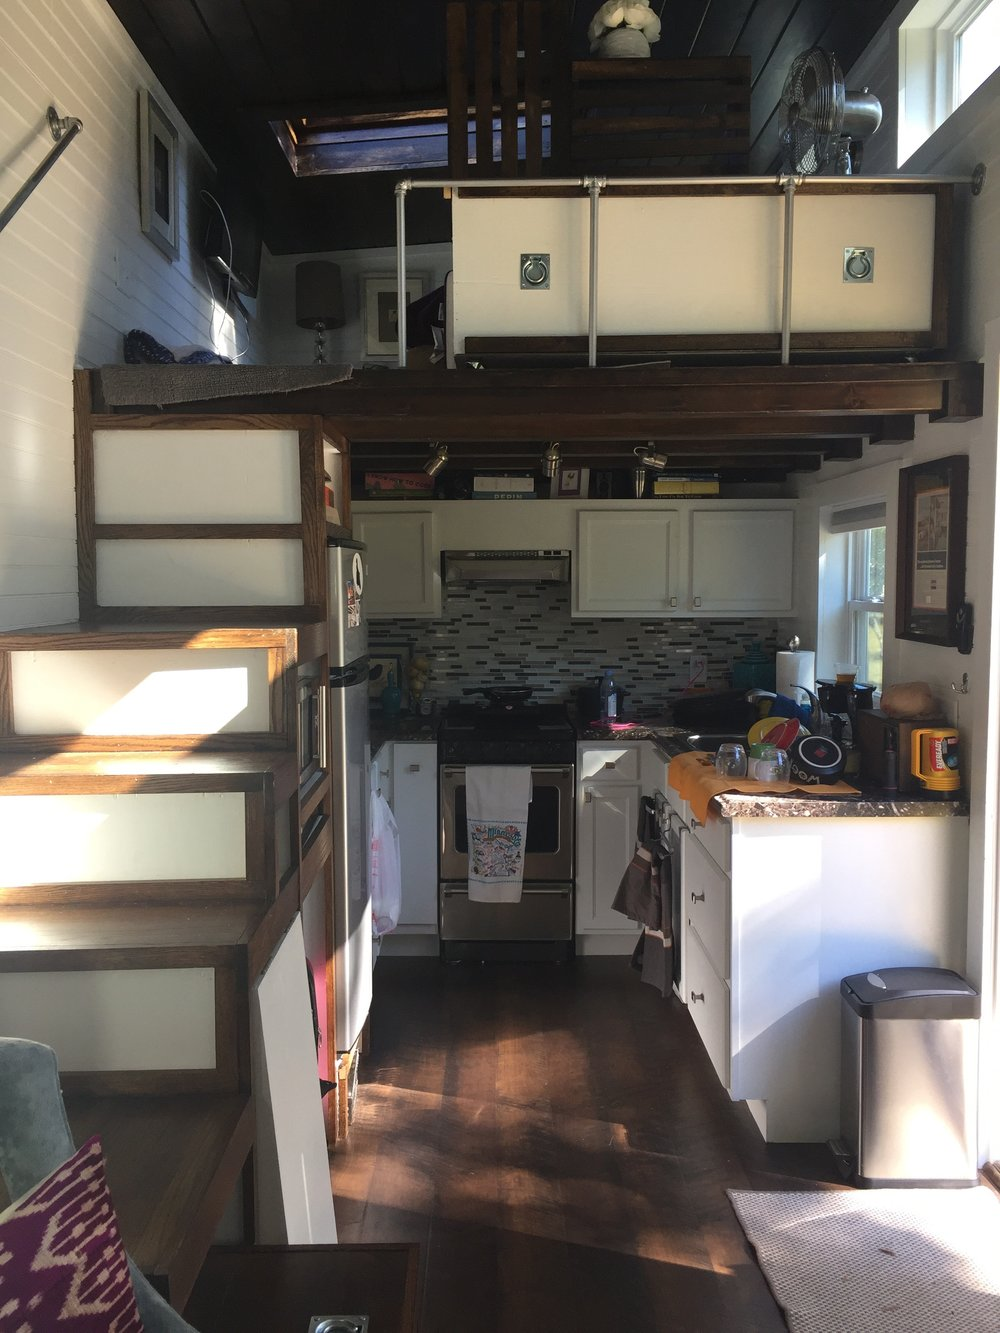 Full kitchen and the loft above.